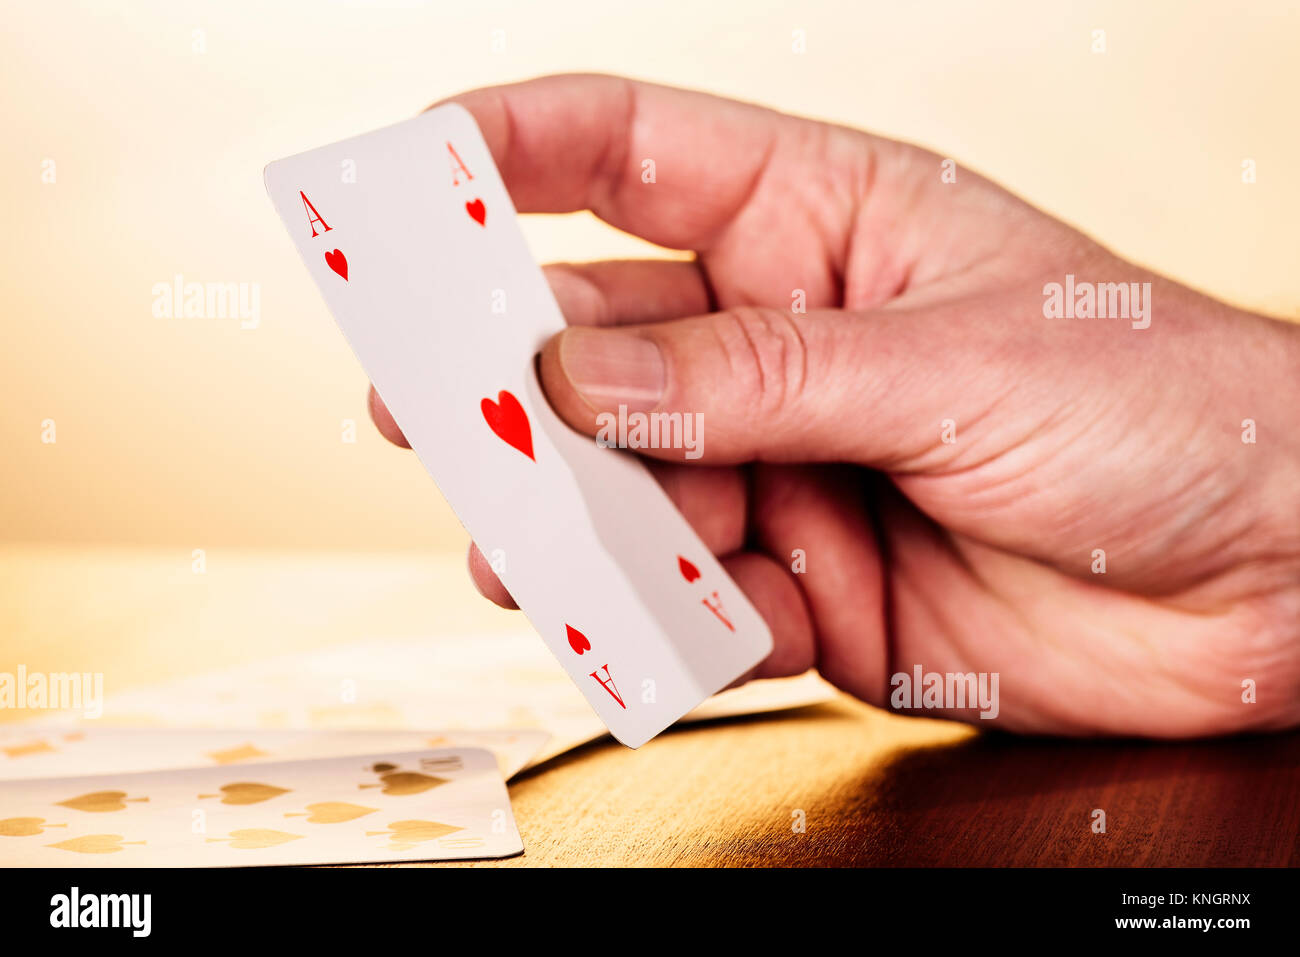 Closeup of a hand holding a ace of hearts playing card. - Stock Image